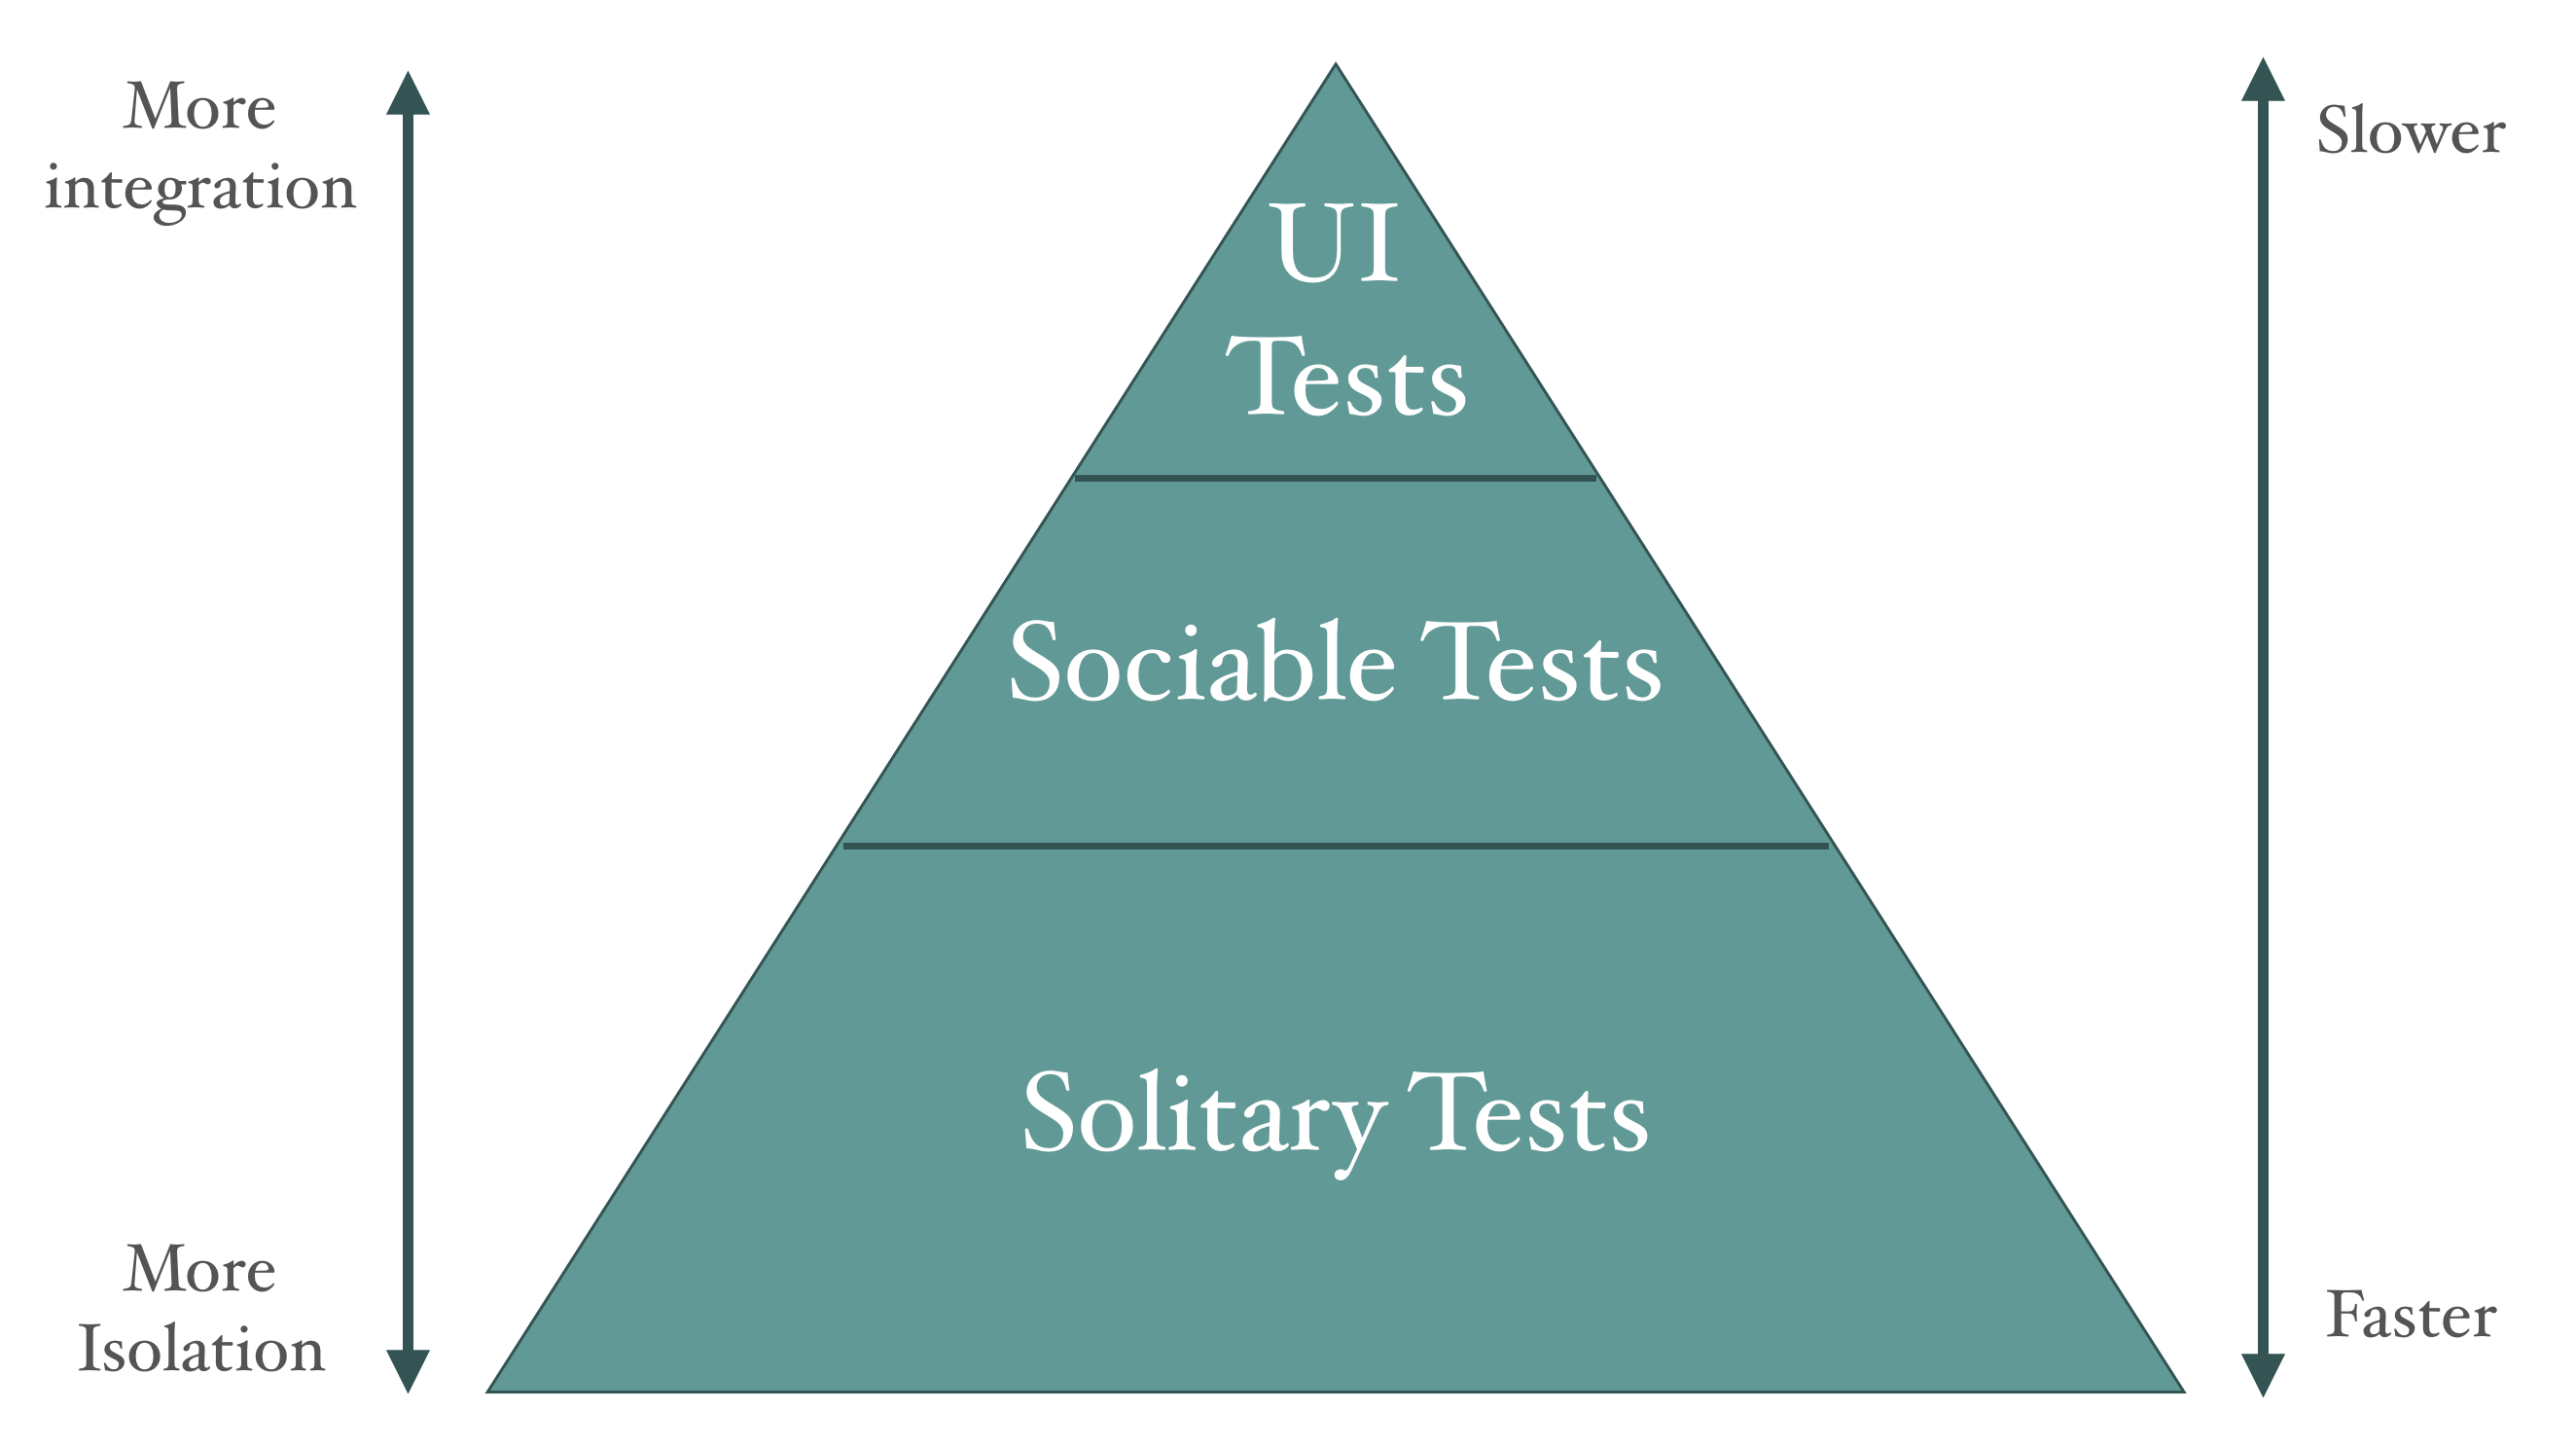 The test pyramid and it's different layers